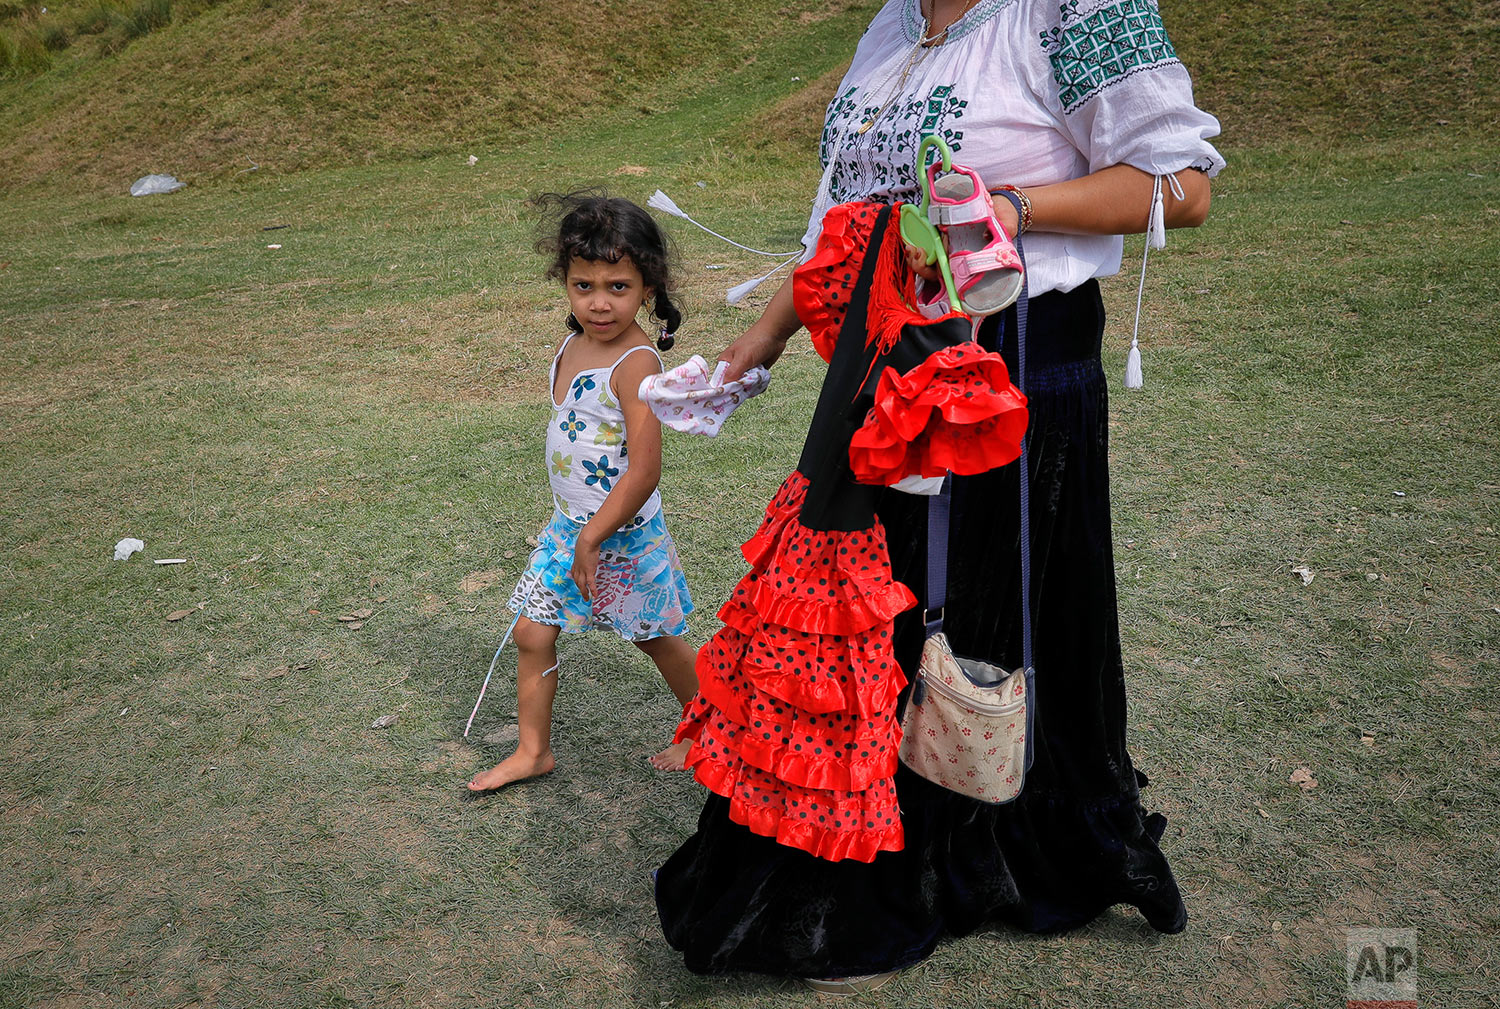 In this Friday, Sept. 8, 2017, photograph, a Roma girl walks next to a woman holding a party dress she bought for her in Costesti, Romania. (AP Photo/Vadim Ghirda)